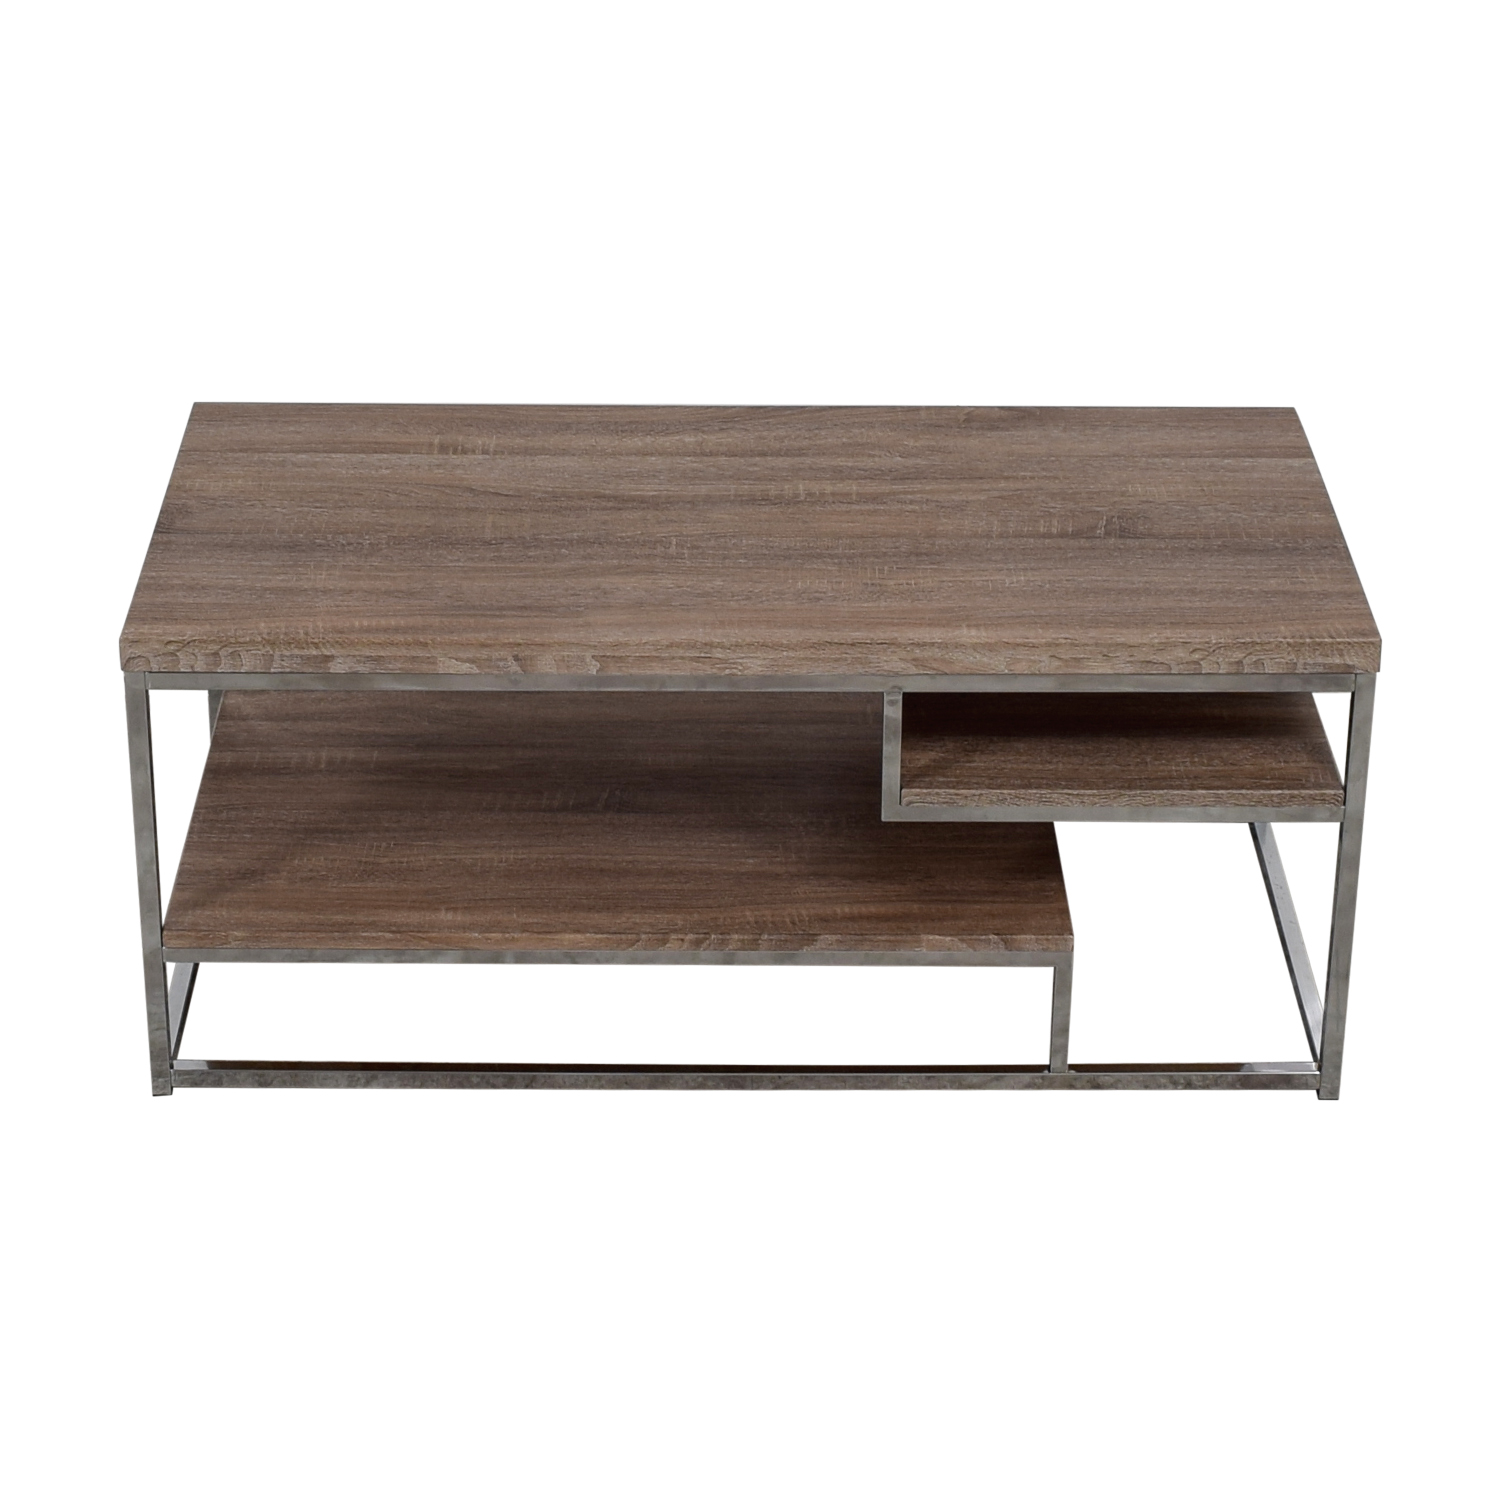 40 Off Rustic Wood And Chrome Coffee Table Or Media Unit Storage